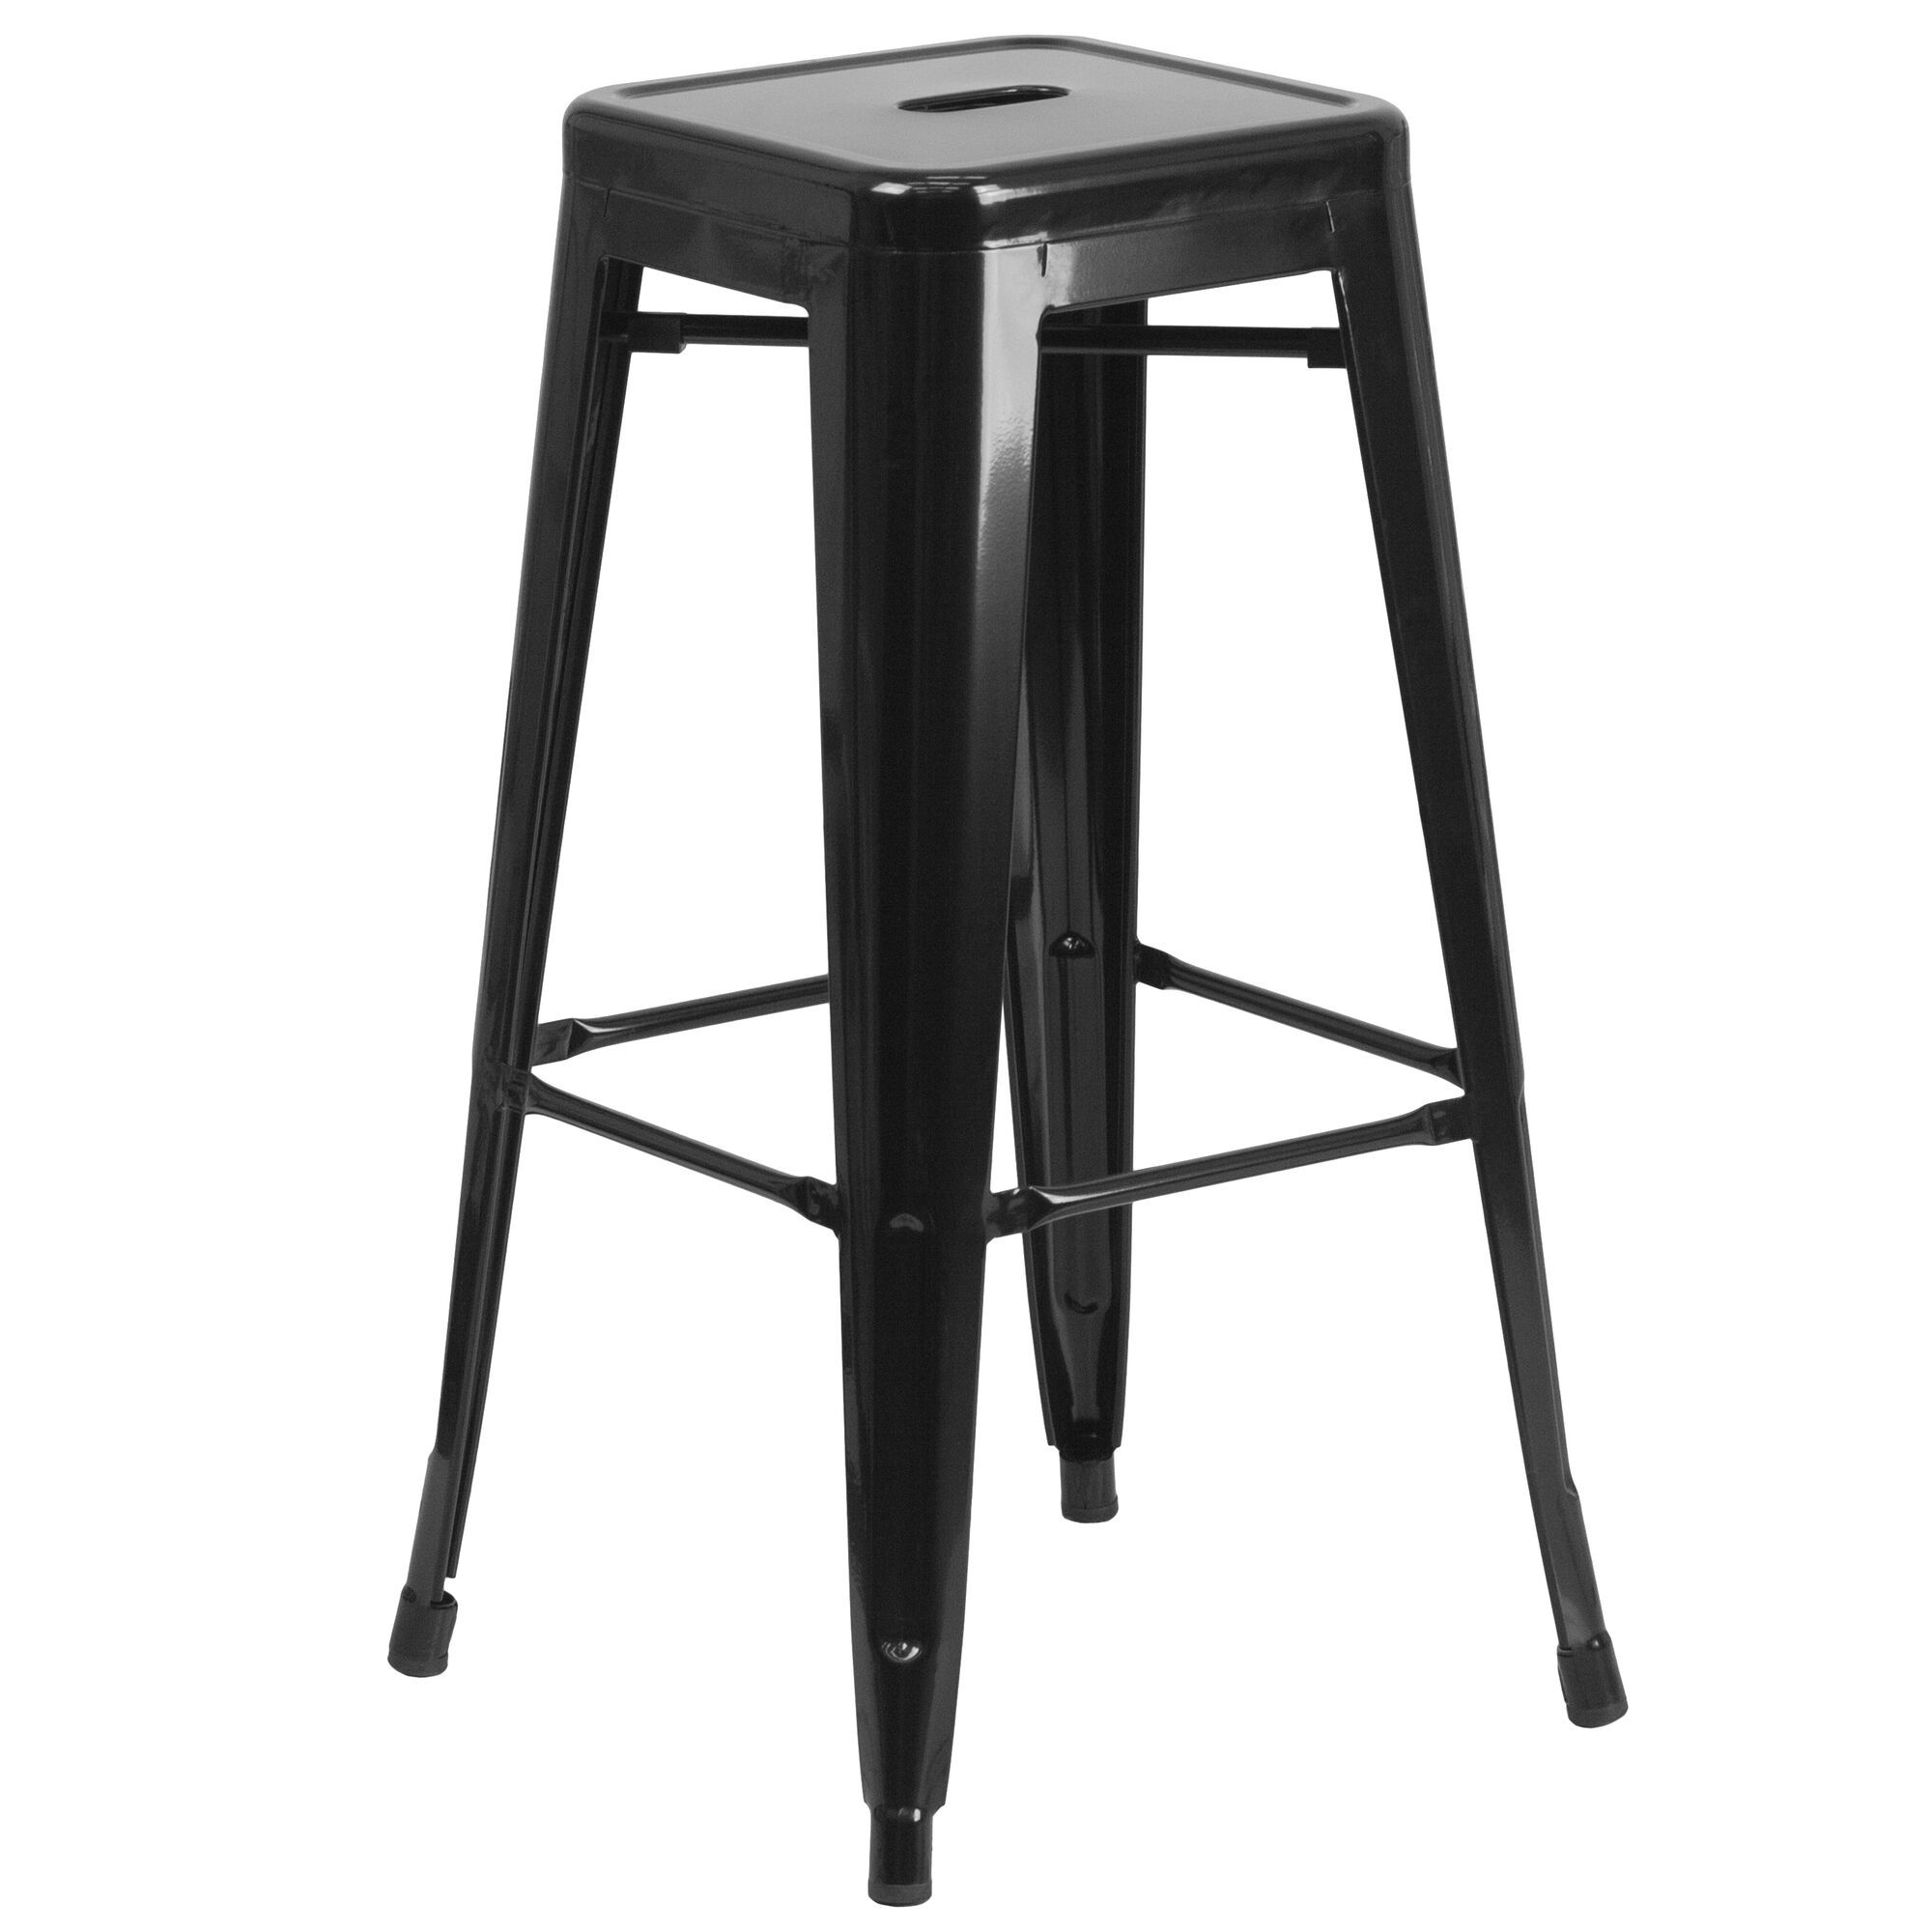 Commercial Grade 30 High Backless Black Metal Indoor Outdoor Barstool With Square Seat In 2020 With Images Backless Bar Stools Metal Bar Stools Patio Bar Stools